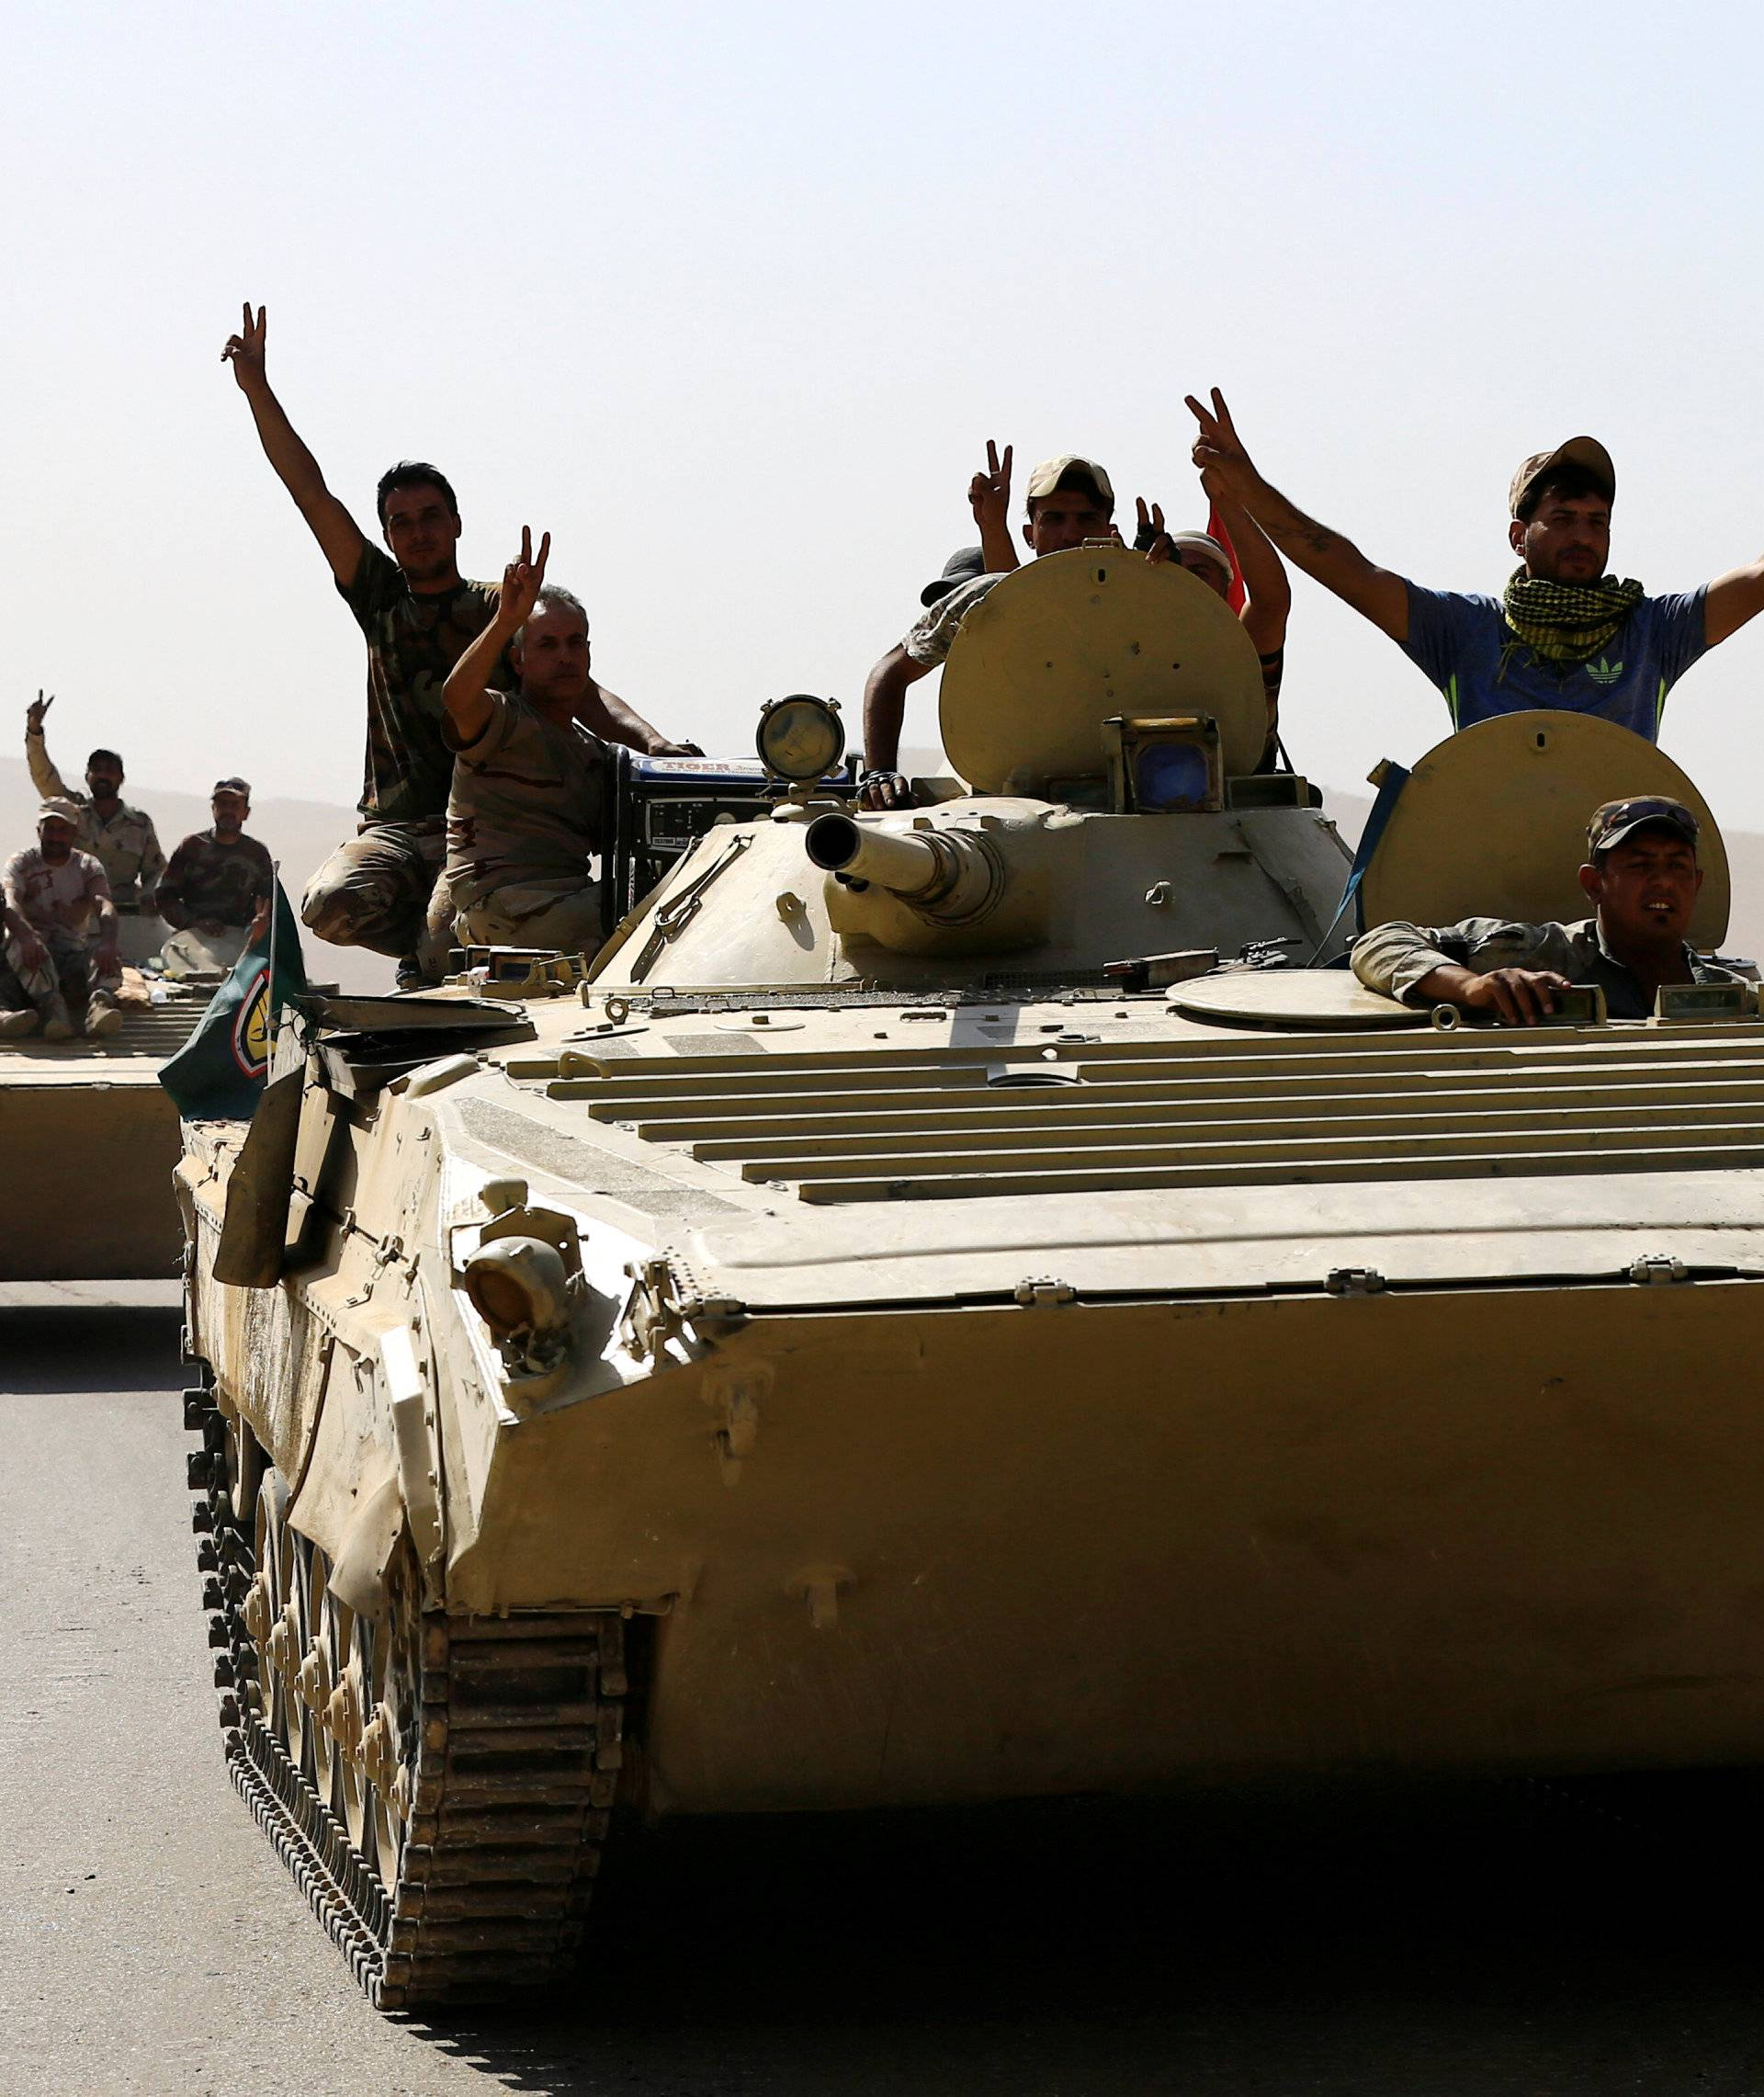 Members of Iraqi Army ride a military vehicle during the war between Iraqi army and Shi'ite Popular Mobilization Forces (PMF) against the Islamic State militants in al-'Ayadiya, northwest of Tal Afar